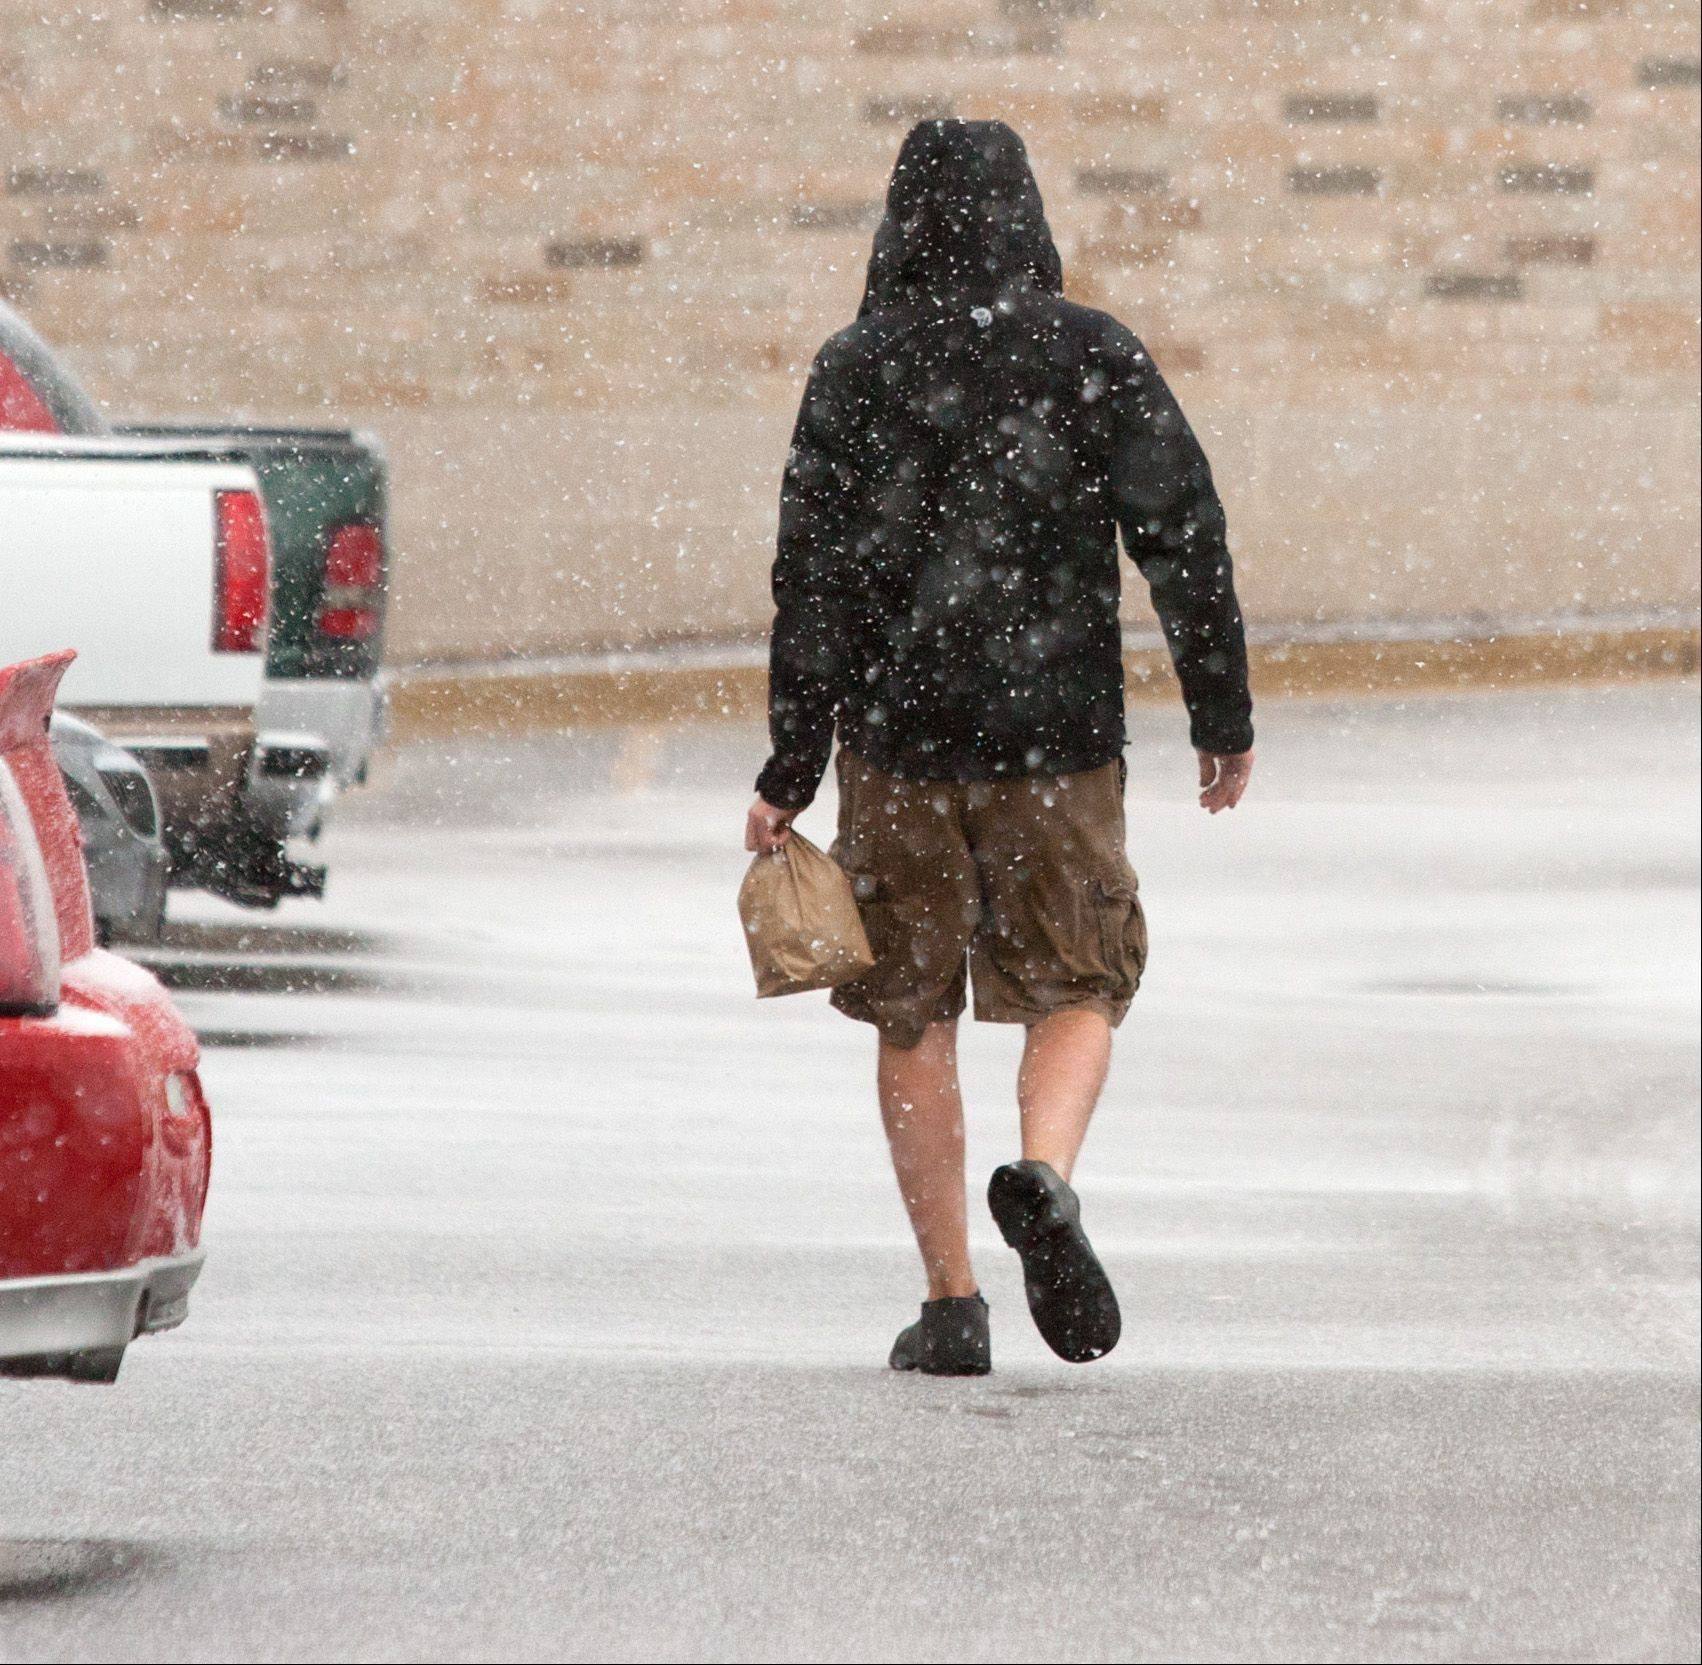 A young man heads to lunch as a winter storm passes through downtown Naperville.